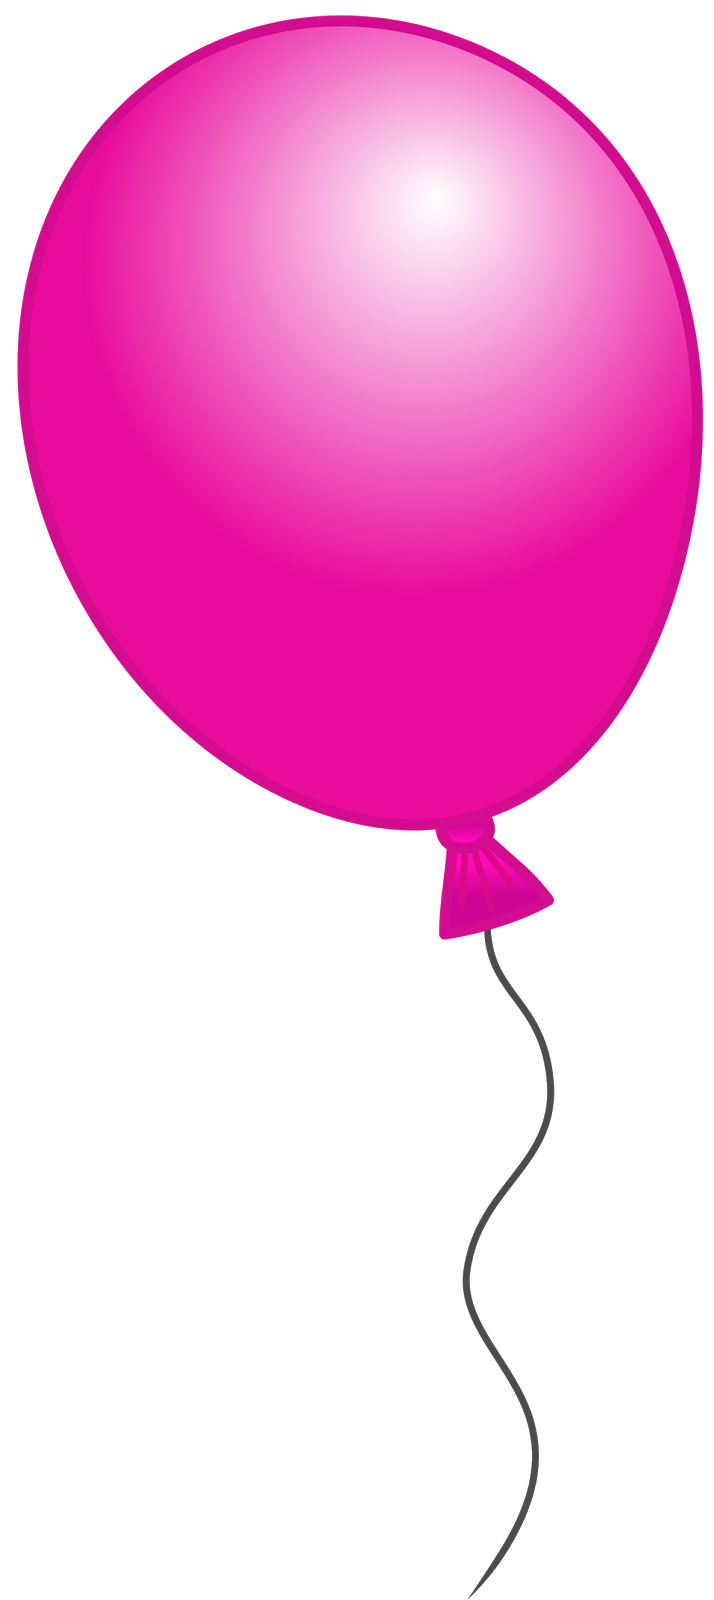 Pink balloons photography png. Balloon transparent pictures free